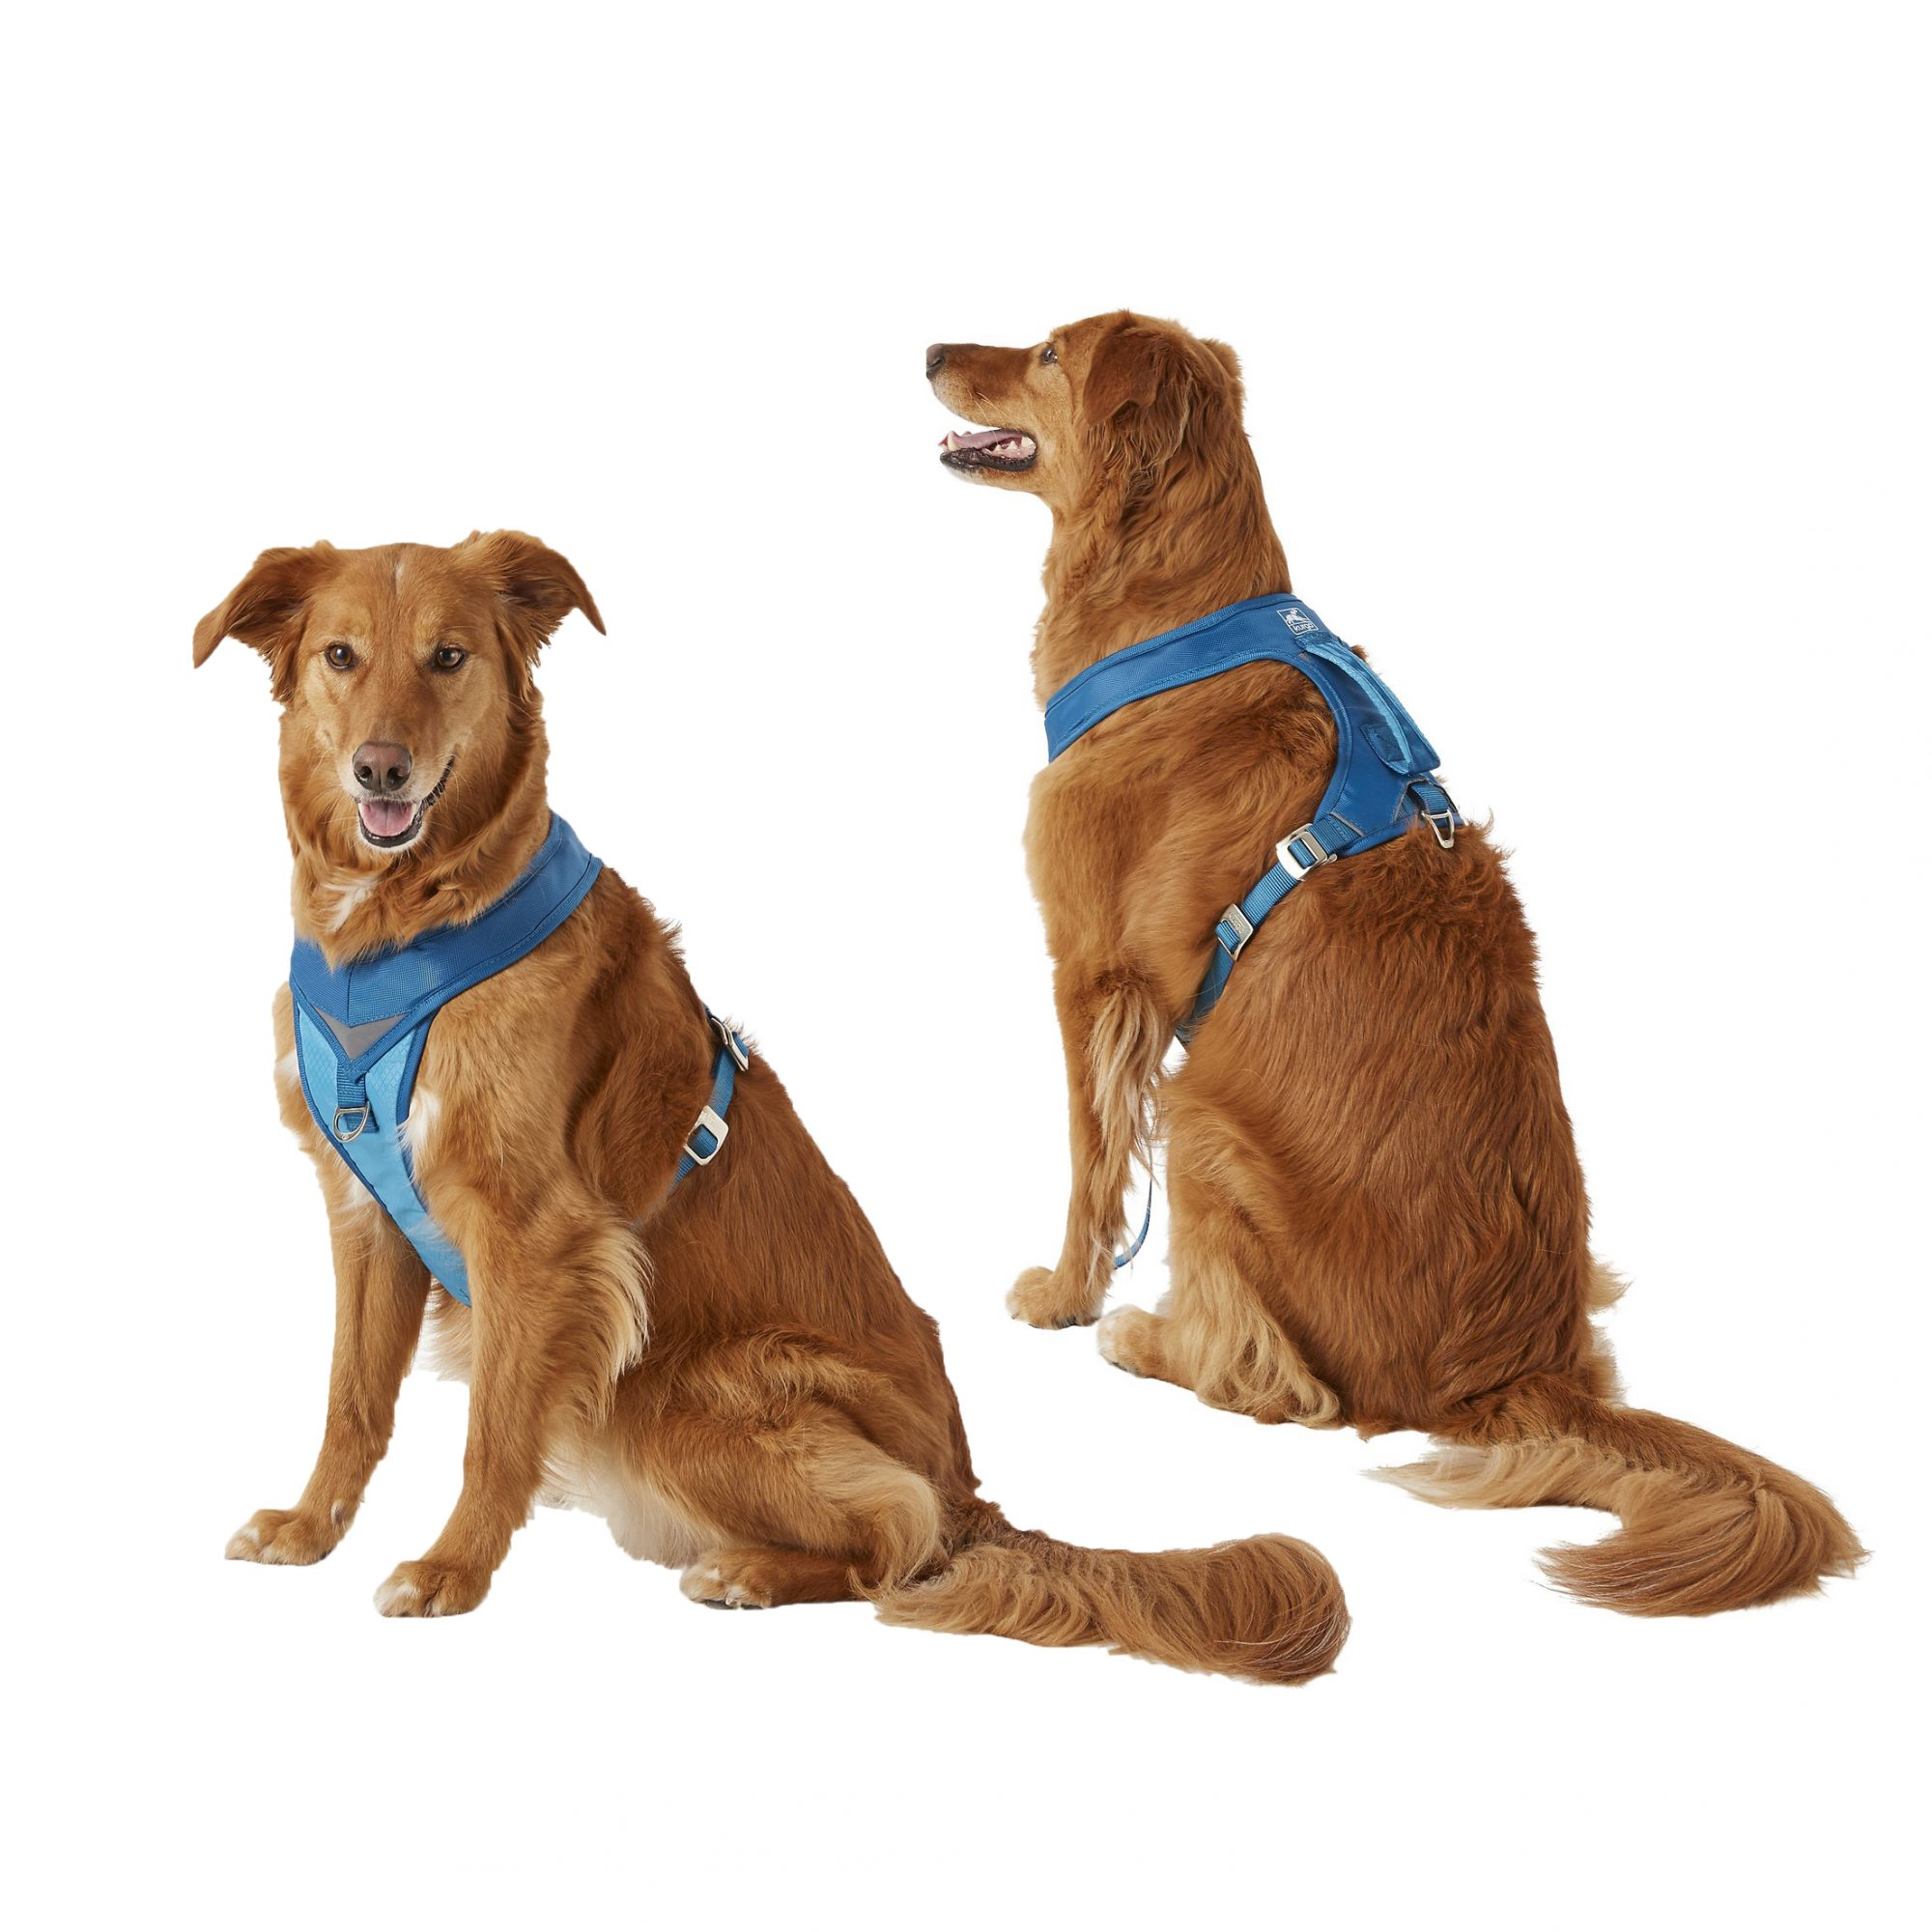 kurgo-go-tech-adventure-nylon-reflective-dog-harness-2